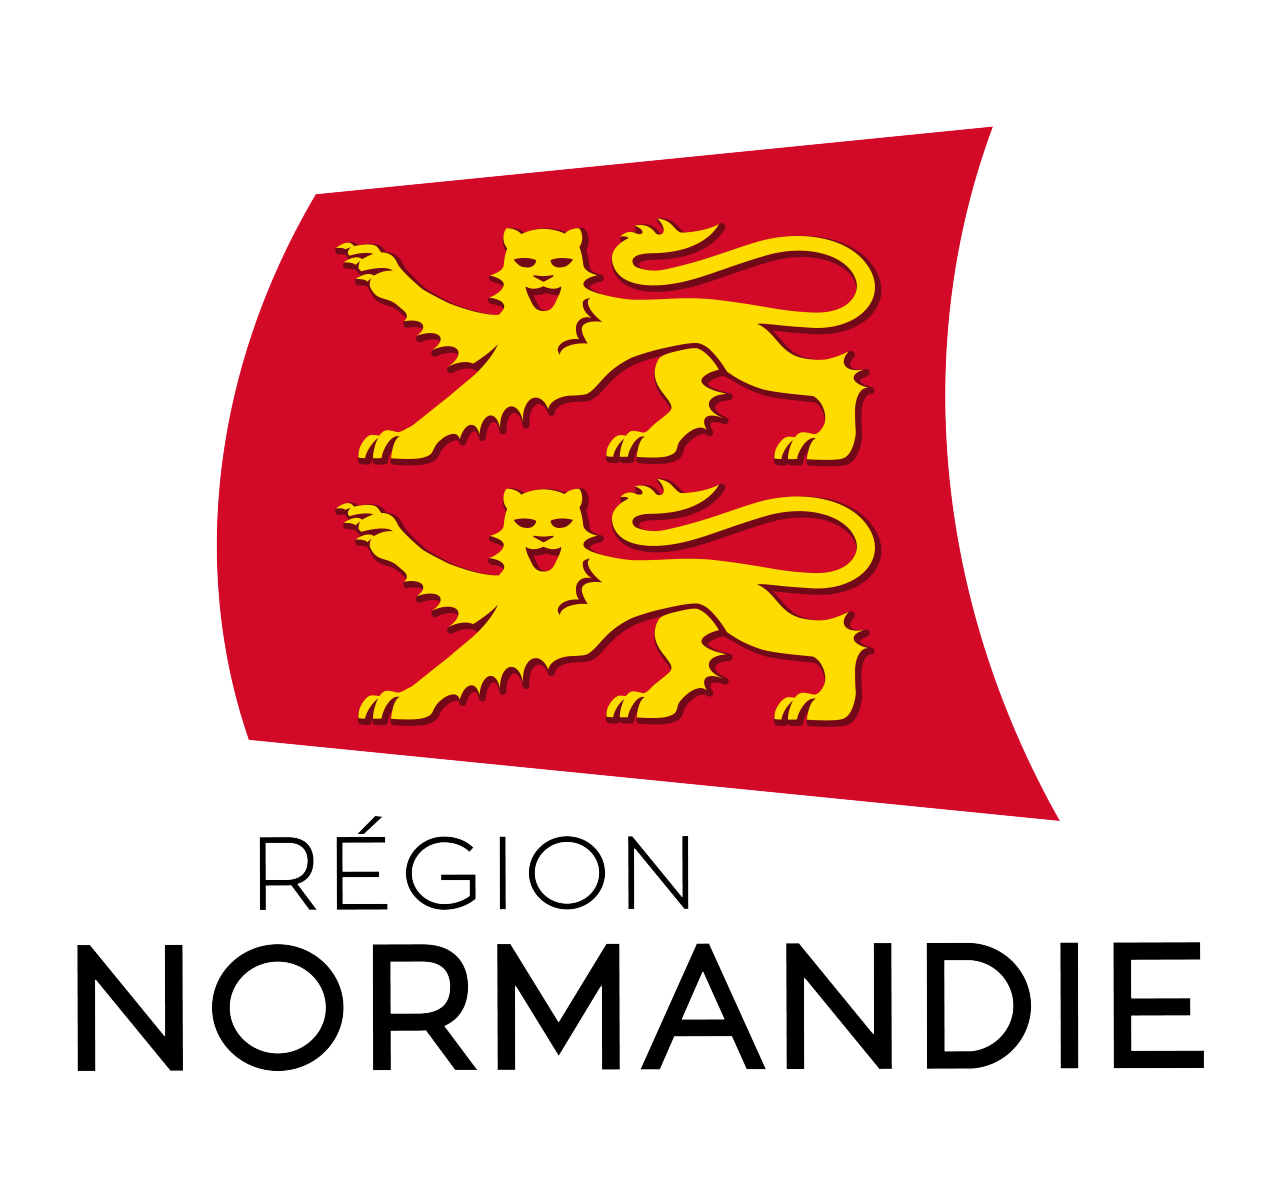 logo-REGION-TRANSPARENT